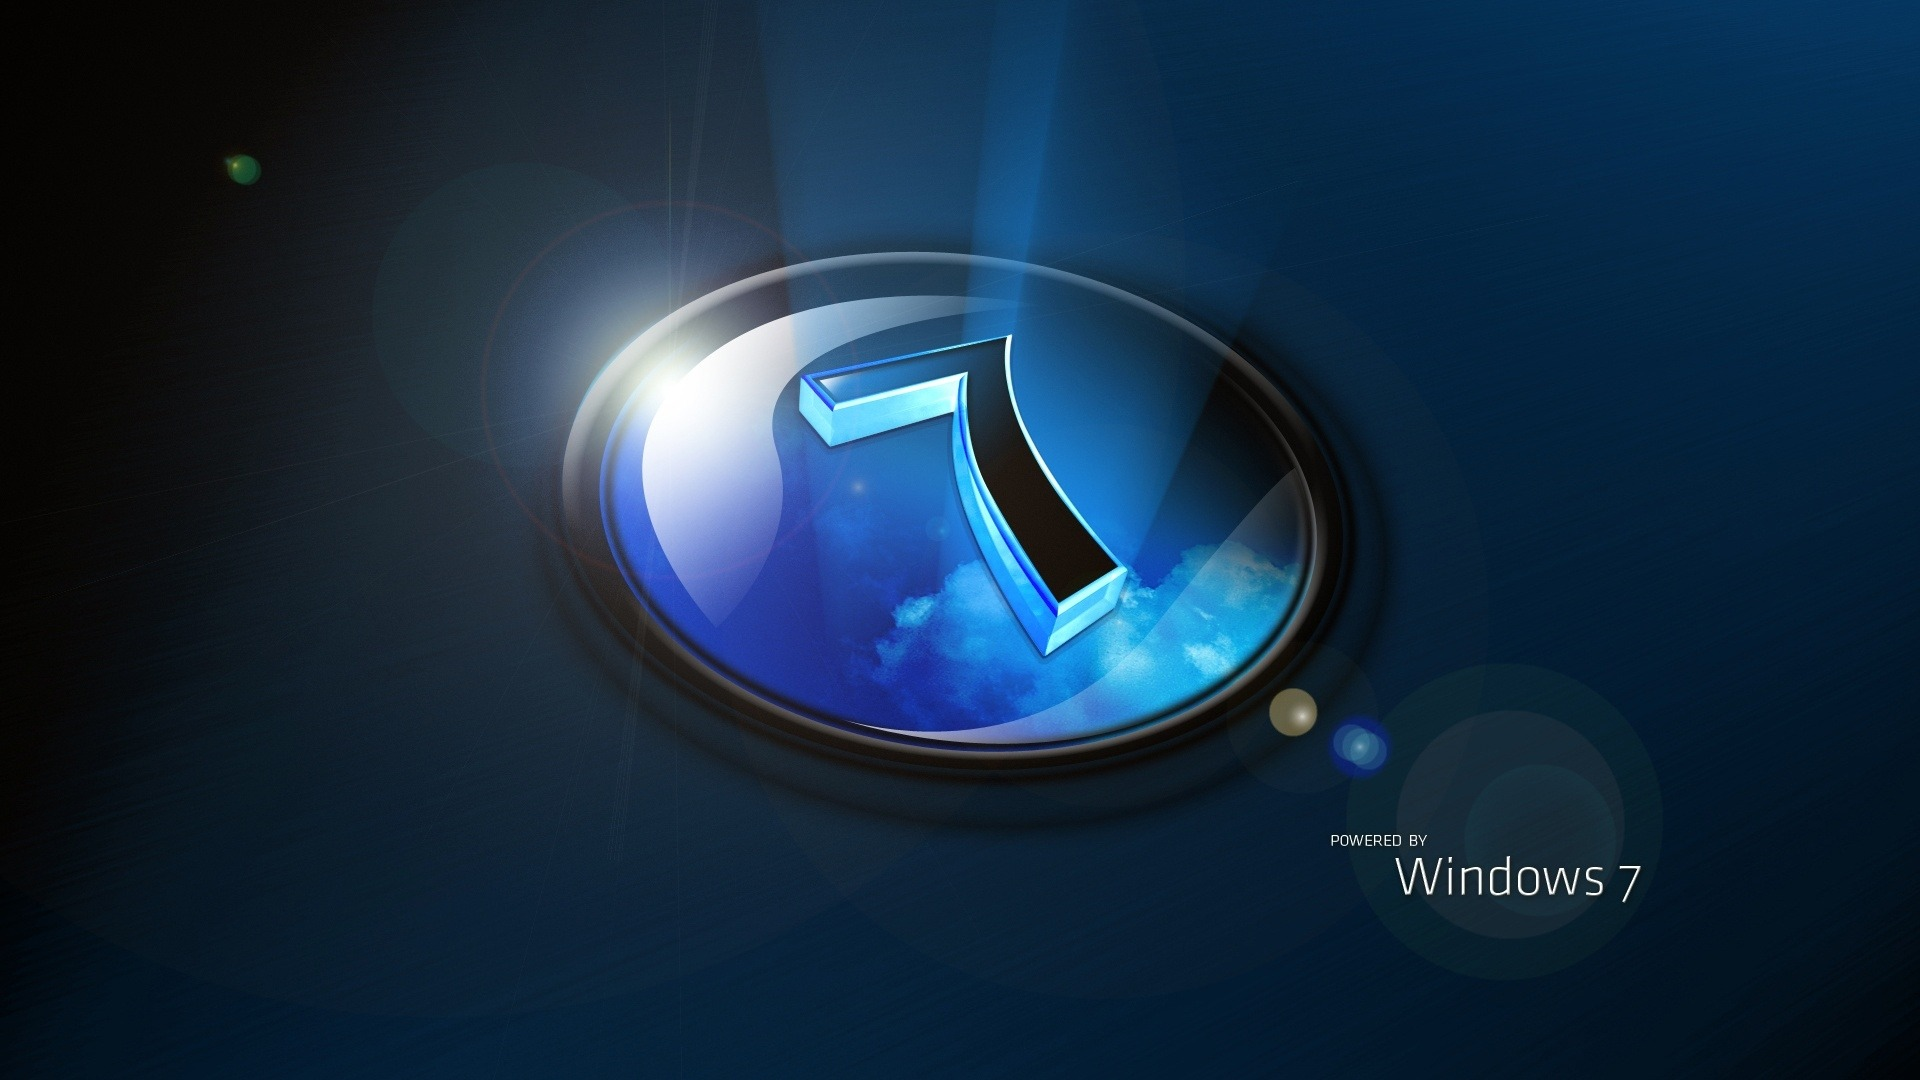 Windows 7 Wallpapers Backgrounds Hd 06